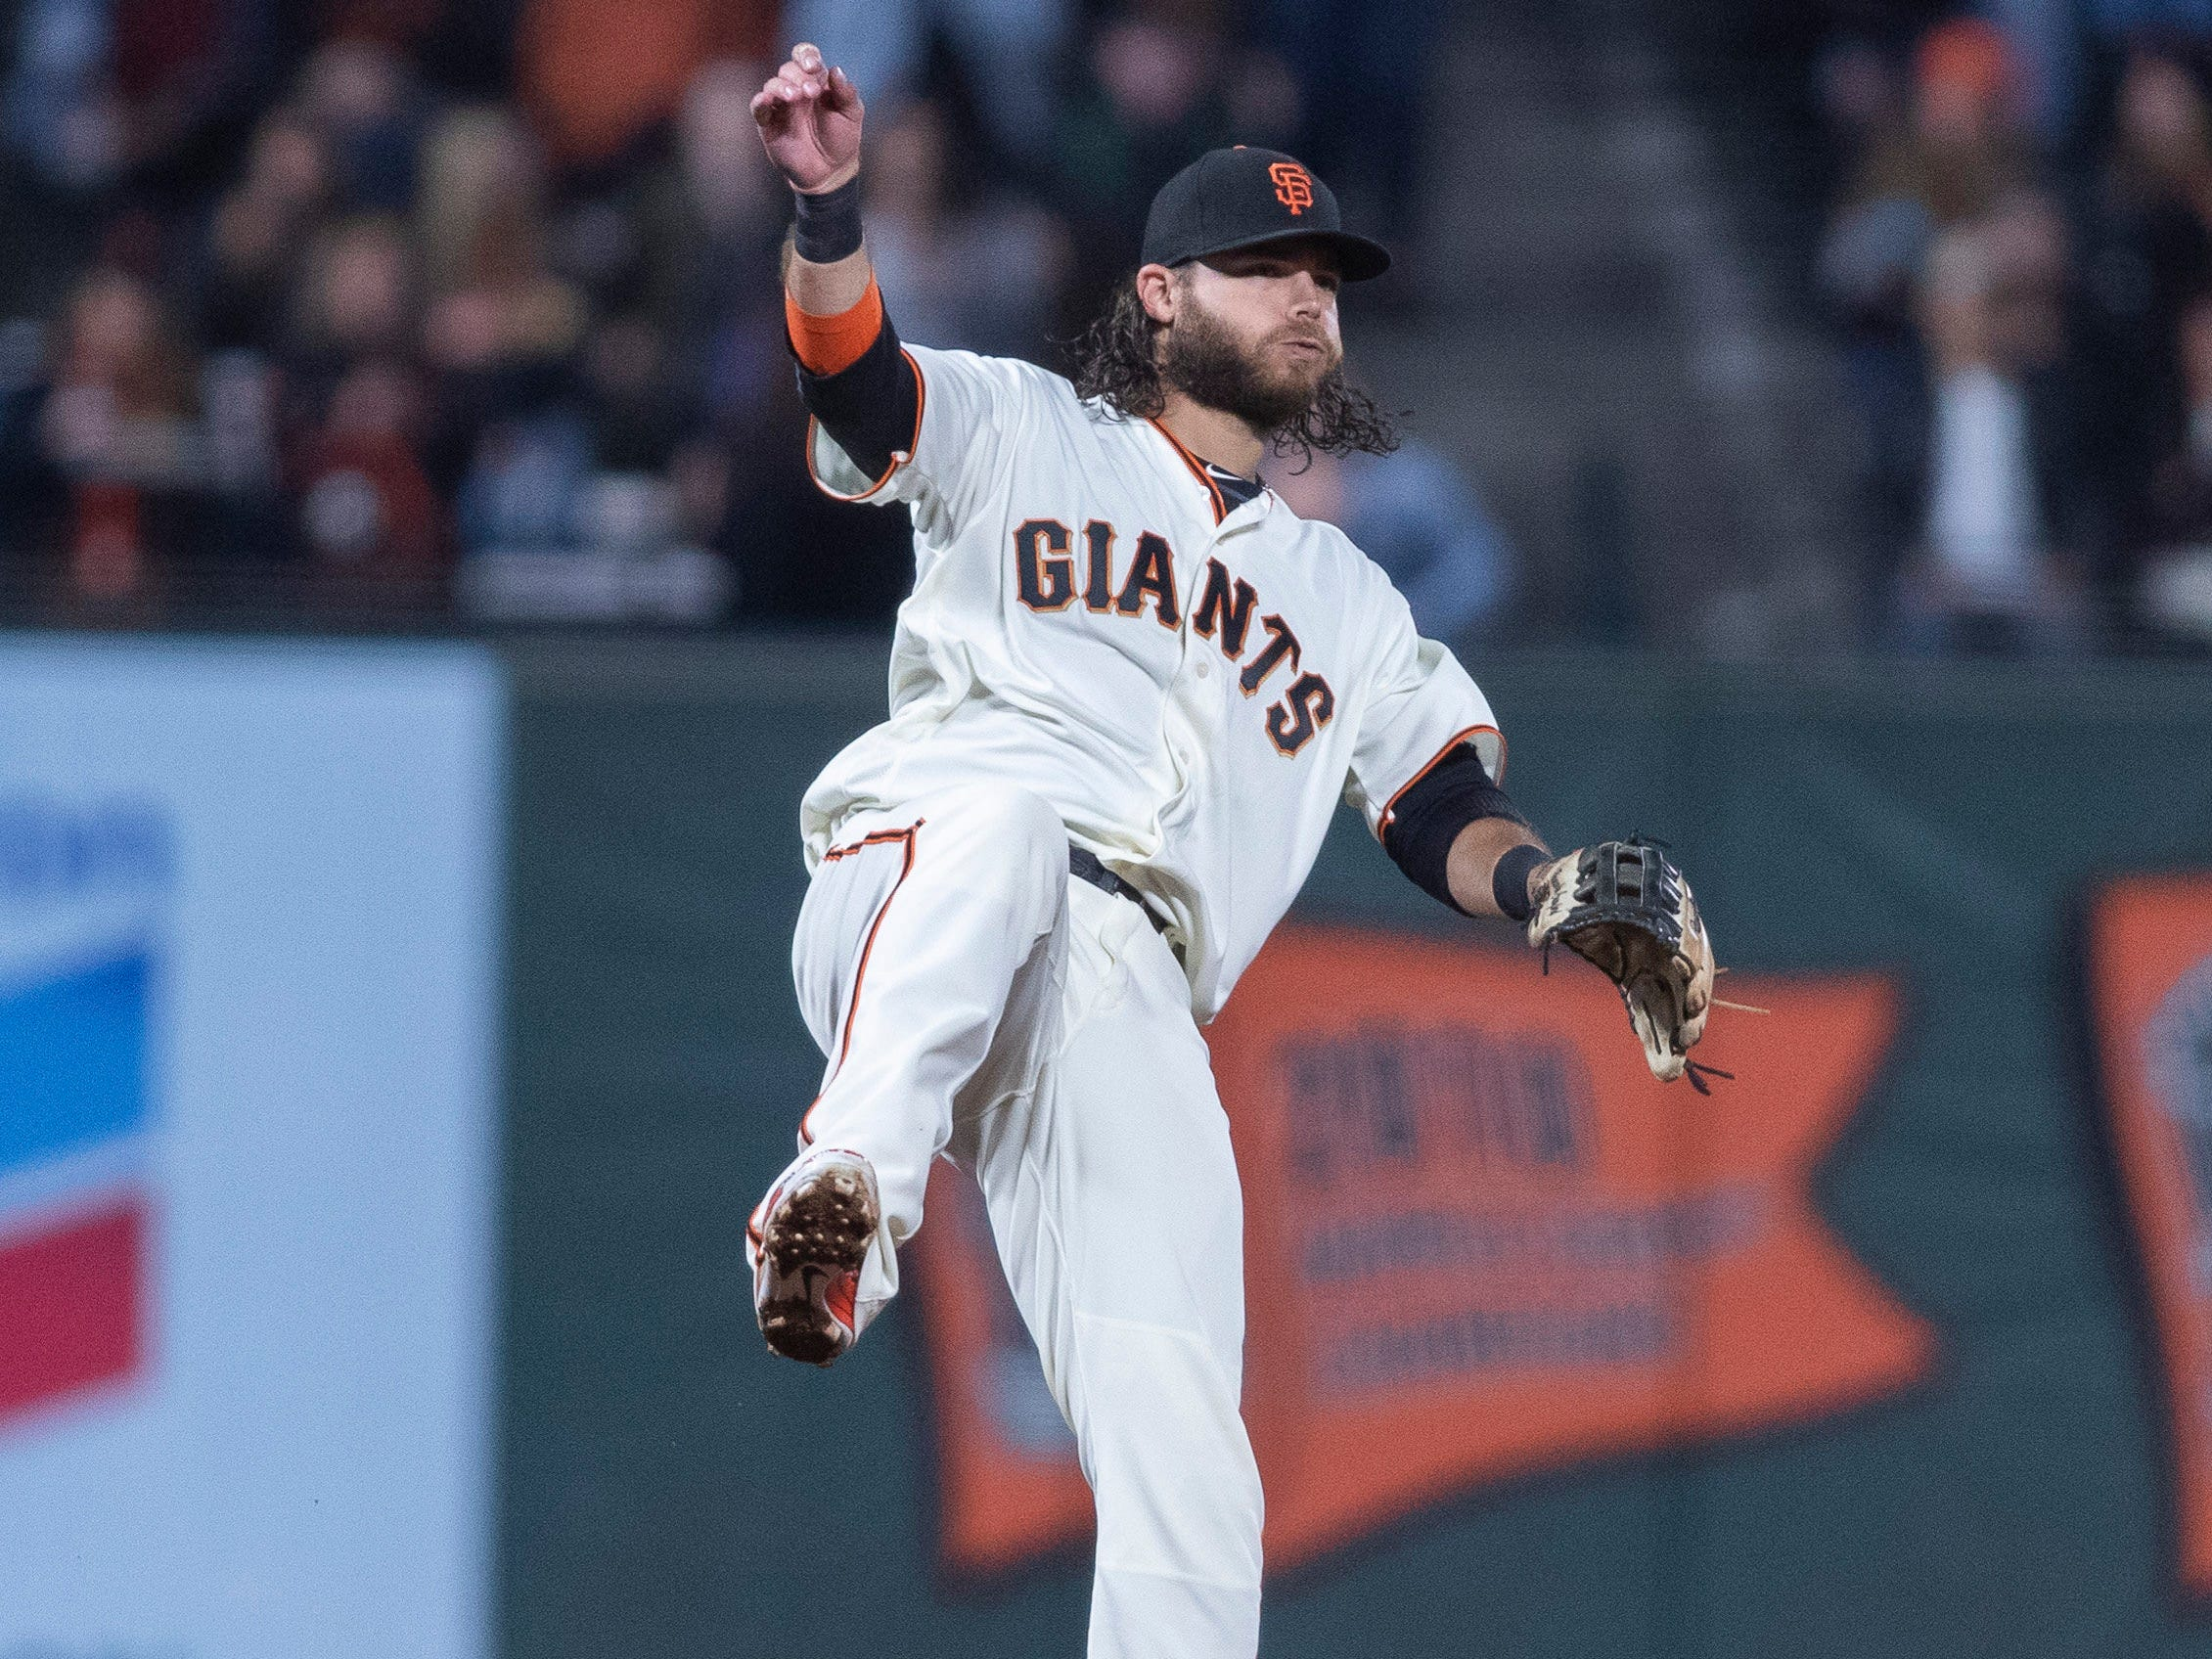 Aug 27, 2018; San Francisco, CA, USA; San Francisco Giants shortstop Brandon Crawford (35) throws out Arizona Diamondbacks right fielder Steven Souza Jr. (not pictured) during the fourth inning at AT&T Park. Mandatory Credit: Neville E. Guard-USA TODAY Sports